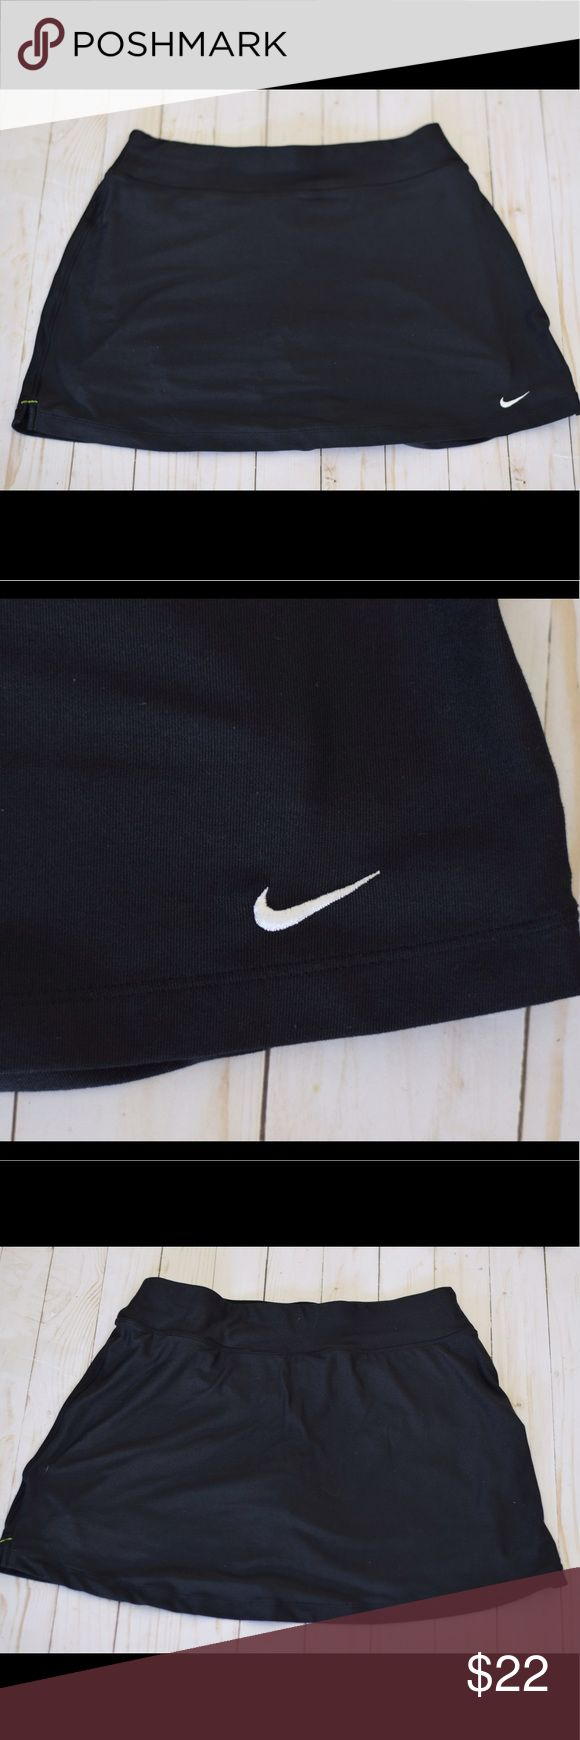 Black Nike Tennis Skort Excellent condition. Worn one time. Has Shorts underneath. Super comfy! Size M (8-10) Nike Skirts